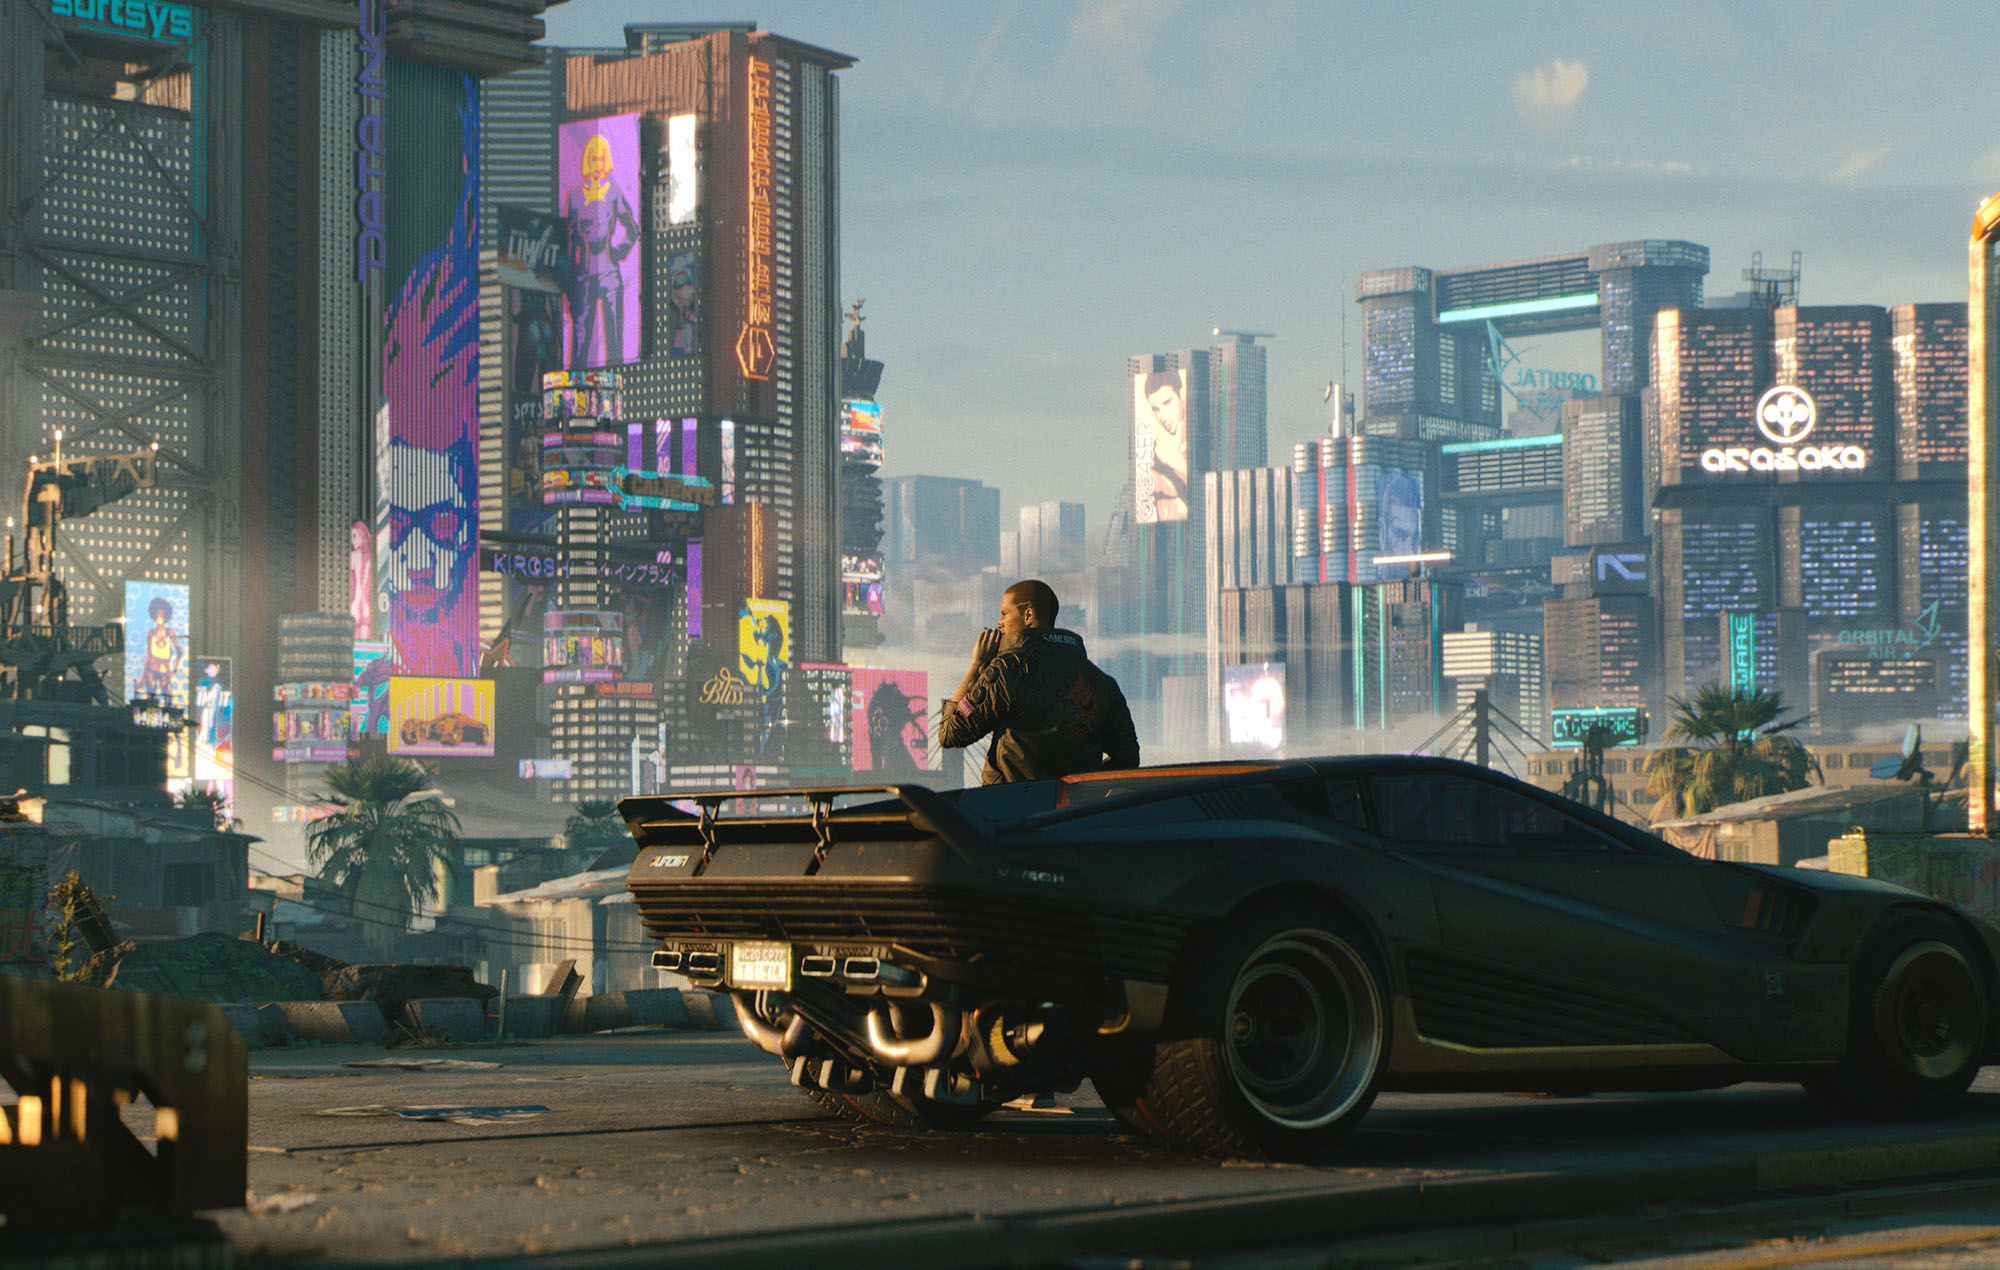 Second lawsuit filed over 'Cyberpunk 2077', CD Projekt RED confirms